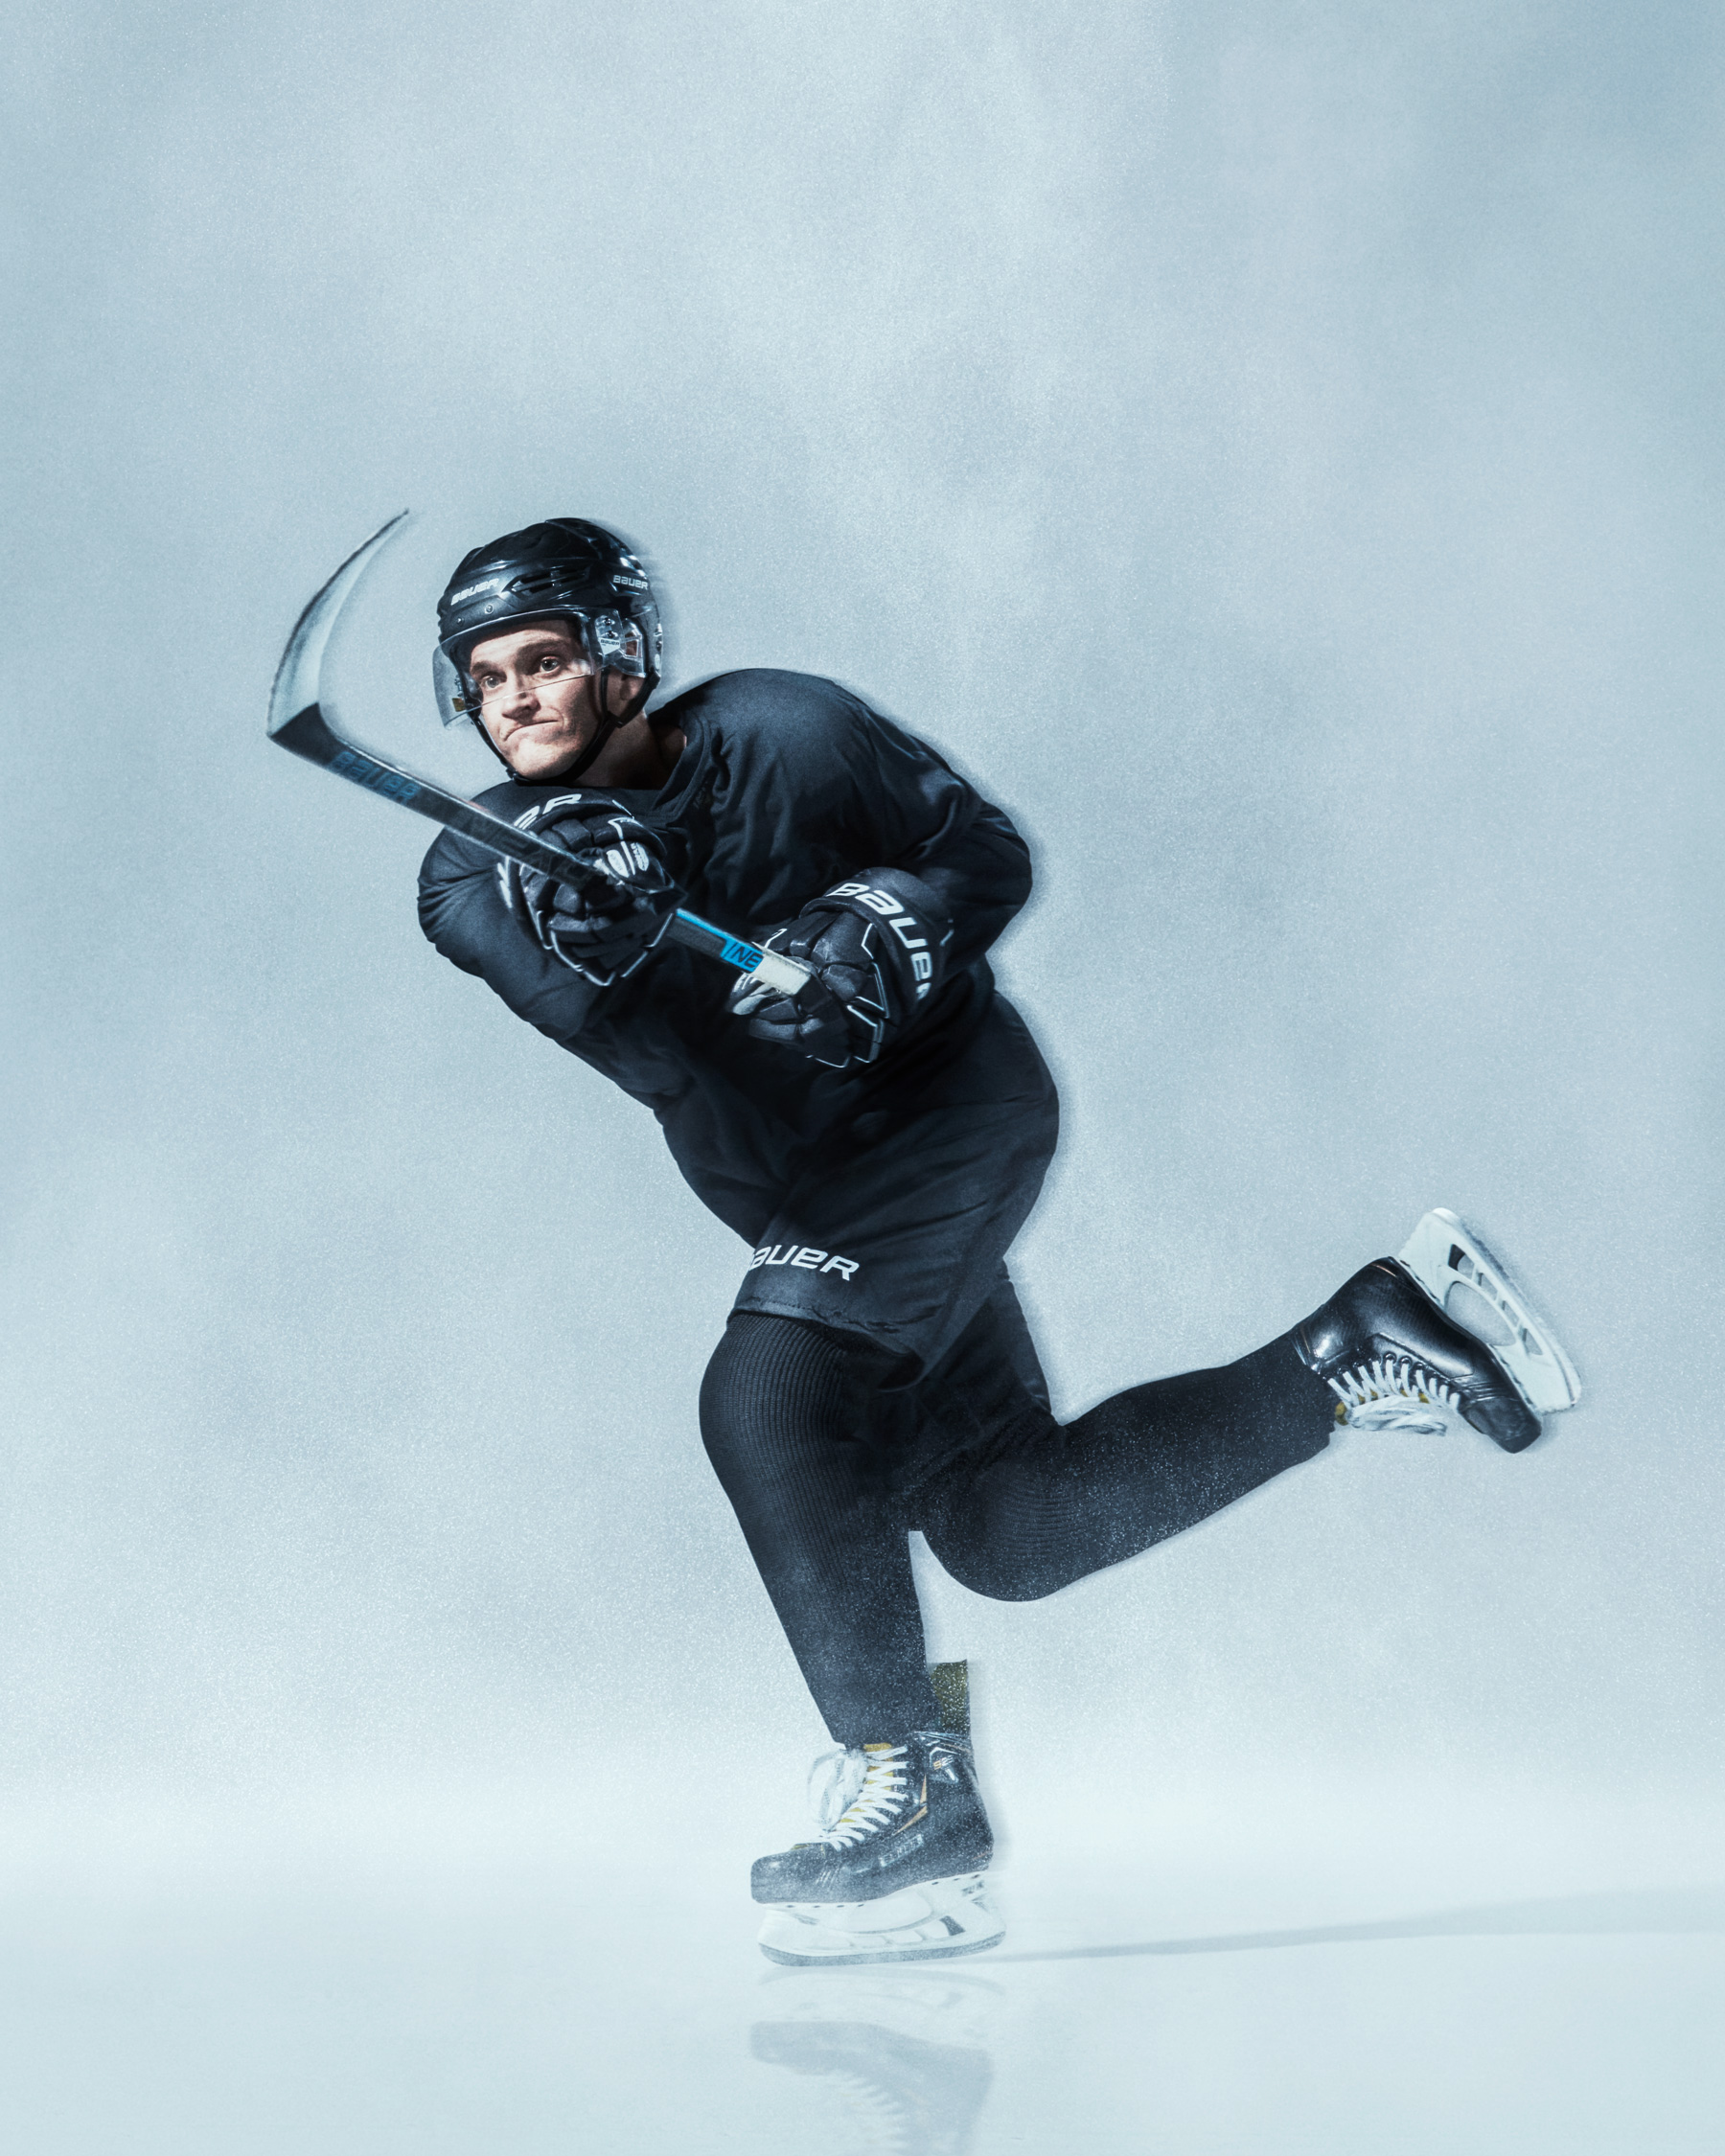 Bauer Hockey  - Stephen Denton Photography -  Los Angeles, California based  Commercial Photographer